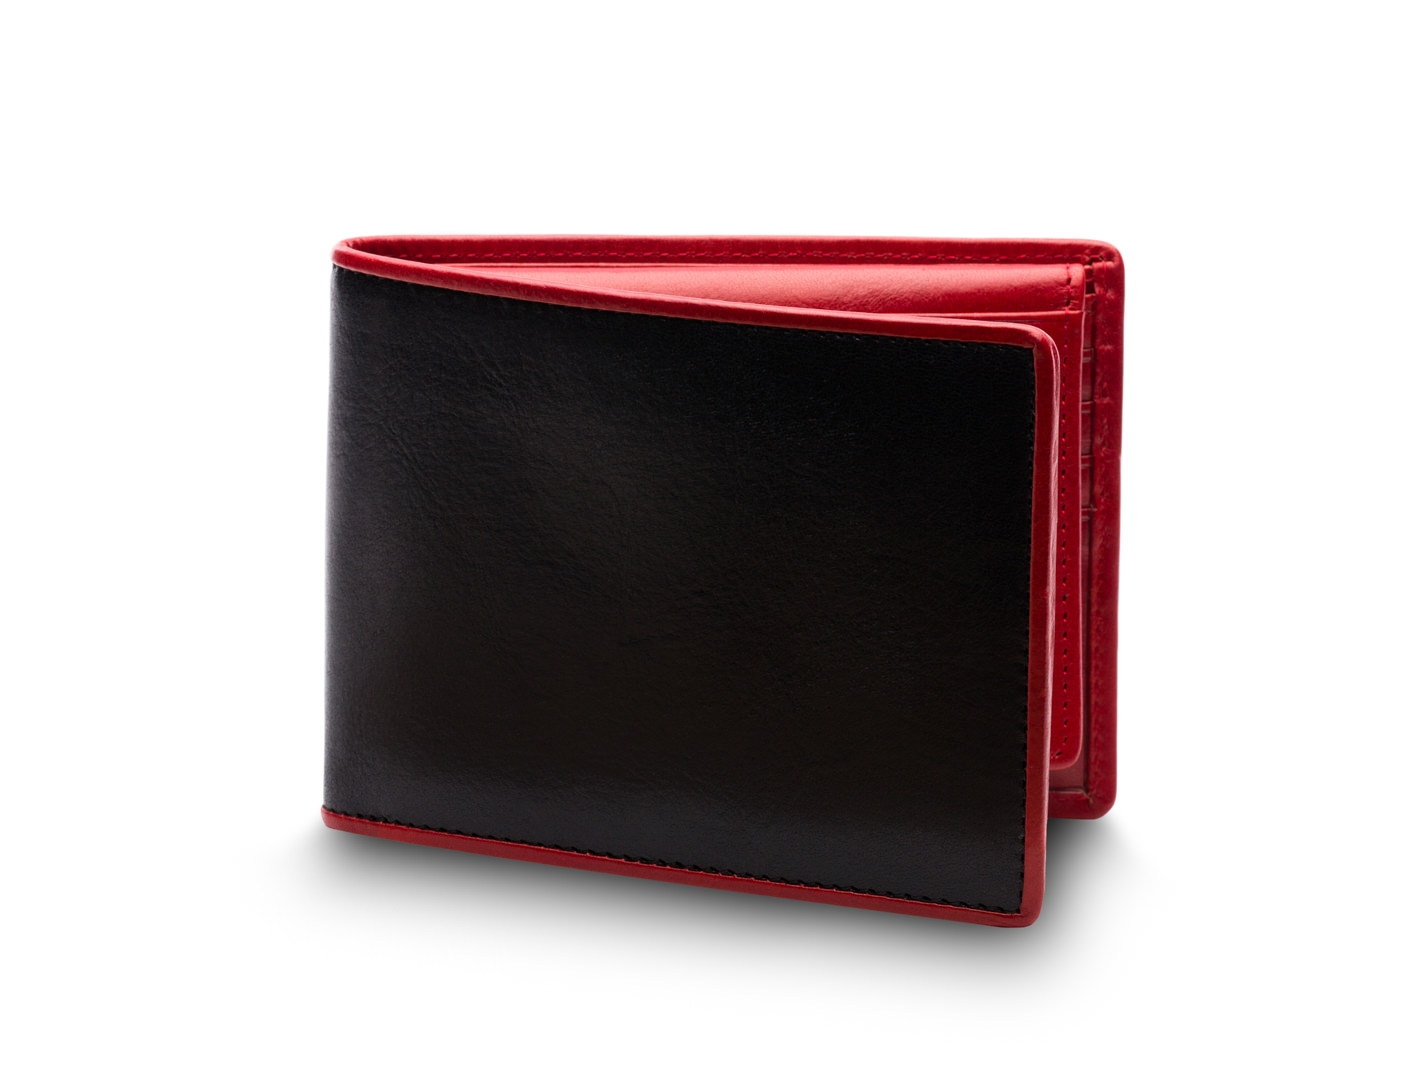 Credit Wallet w/I.D. Passcase-271 Black/Red - 271 Black/Red